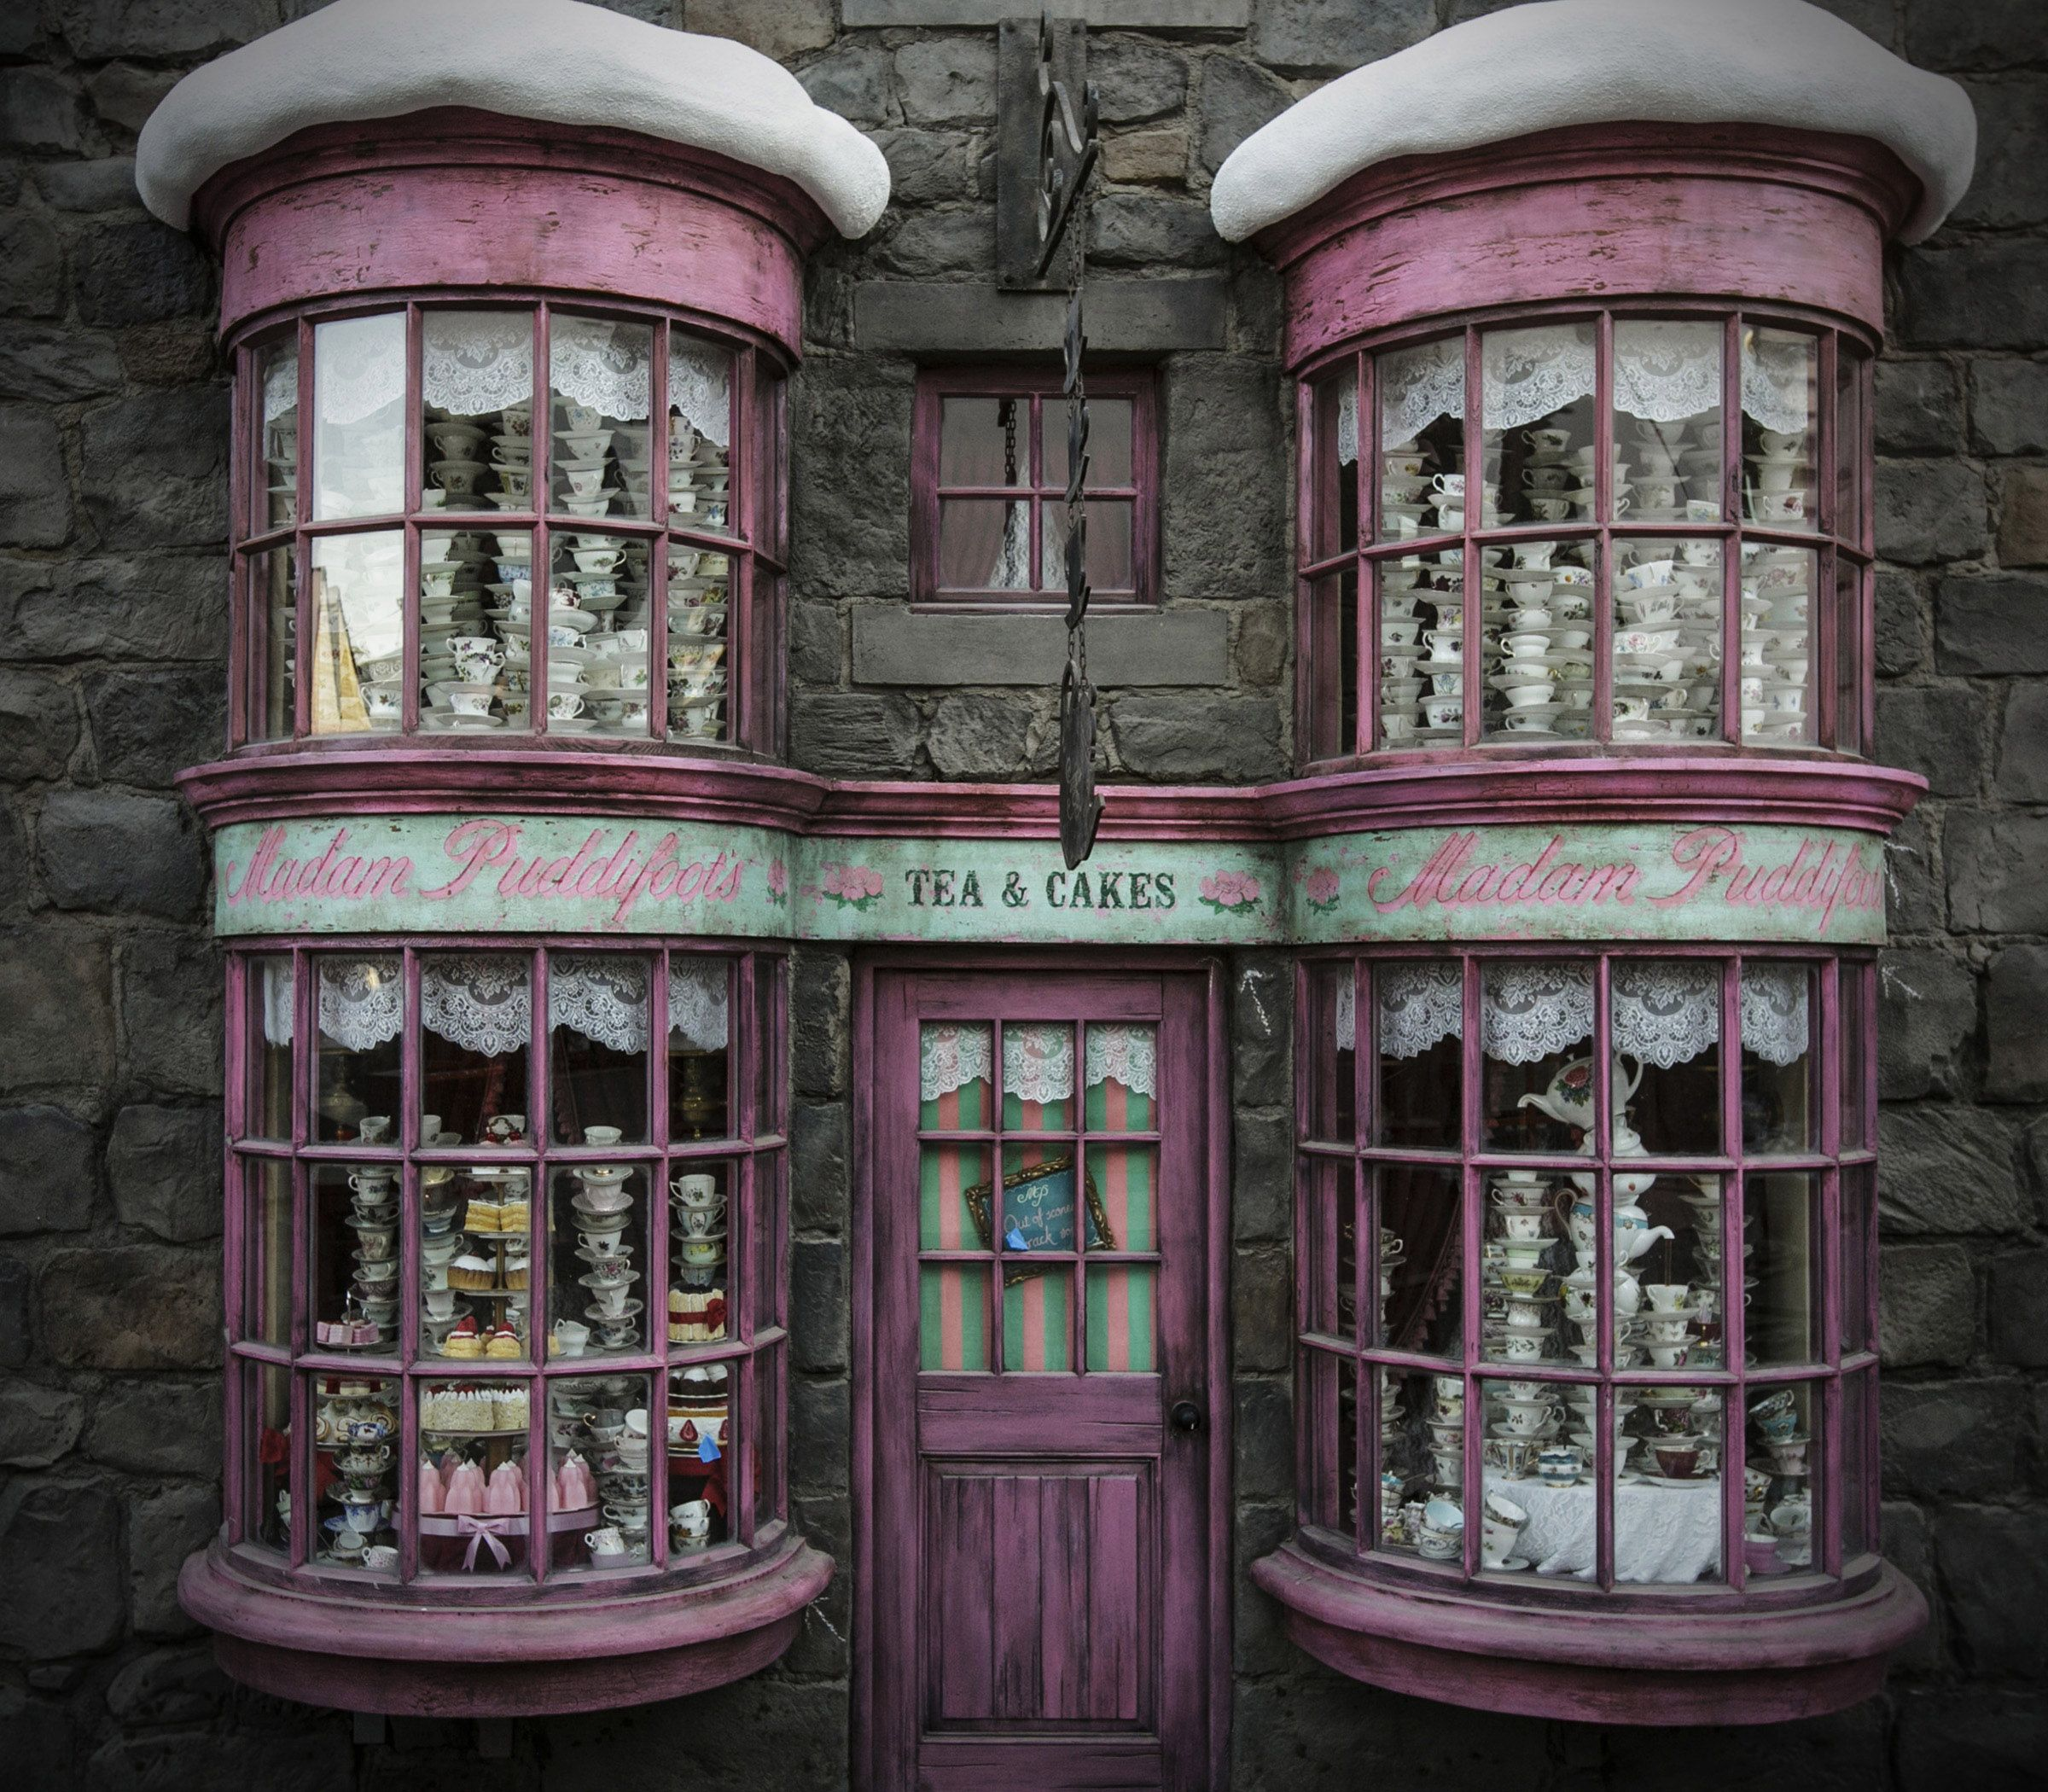 Shops at The Wizarding World of Harry Potter at Universal Studios Hollywood